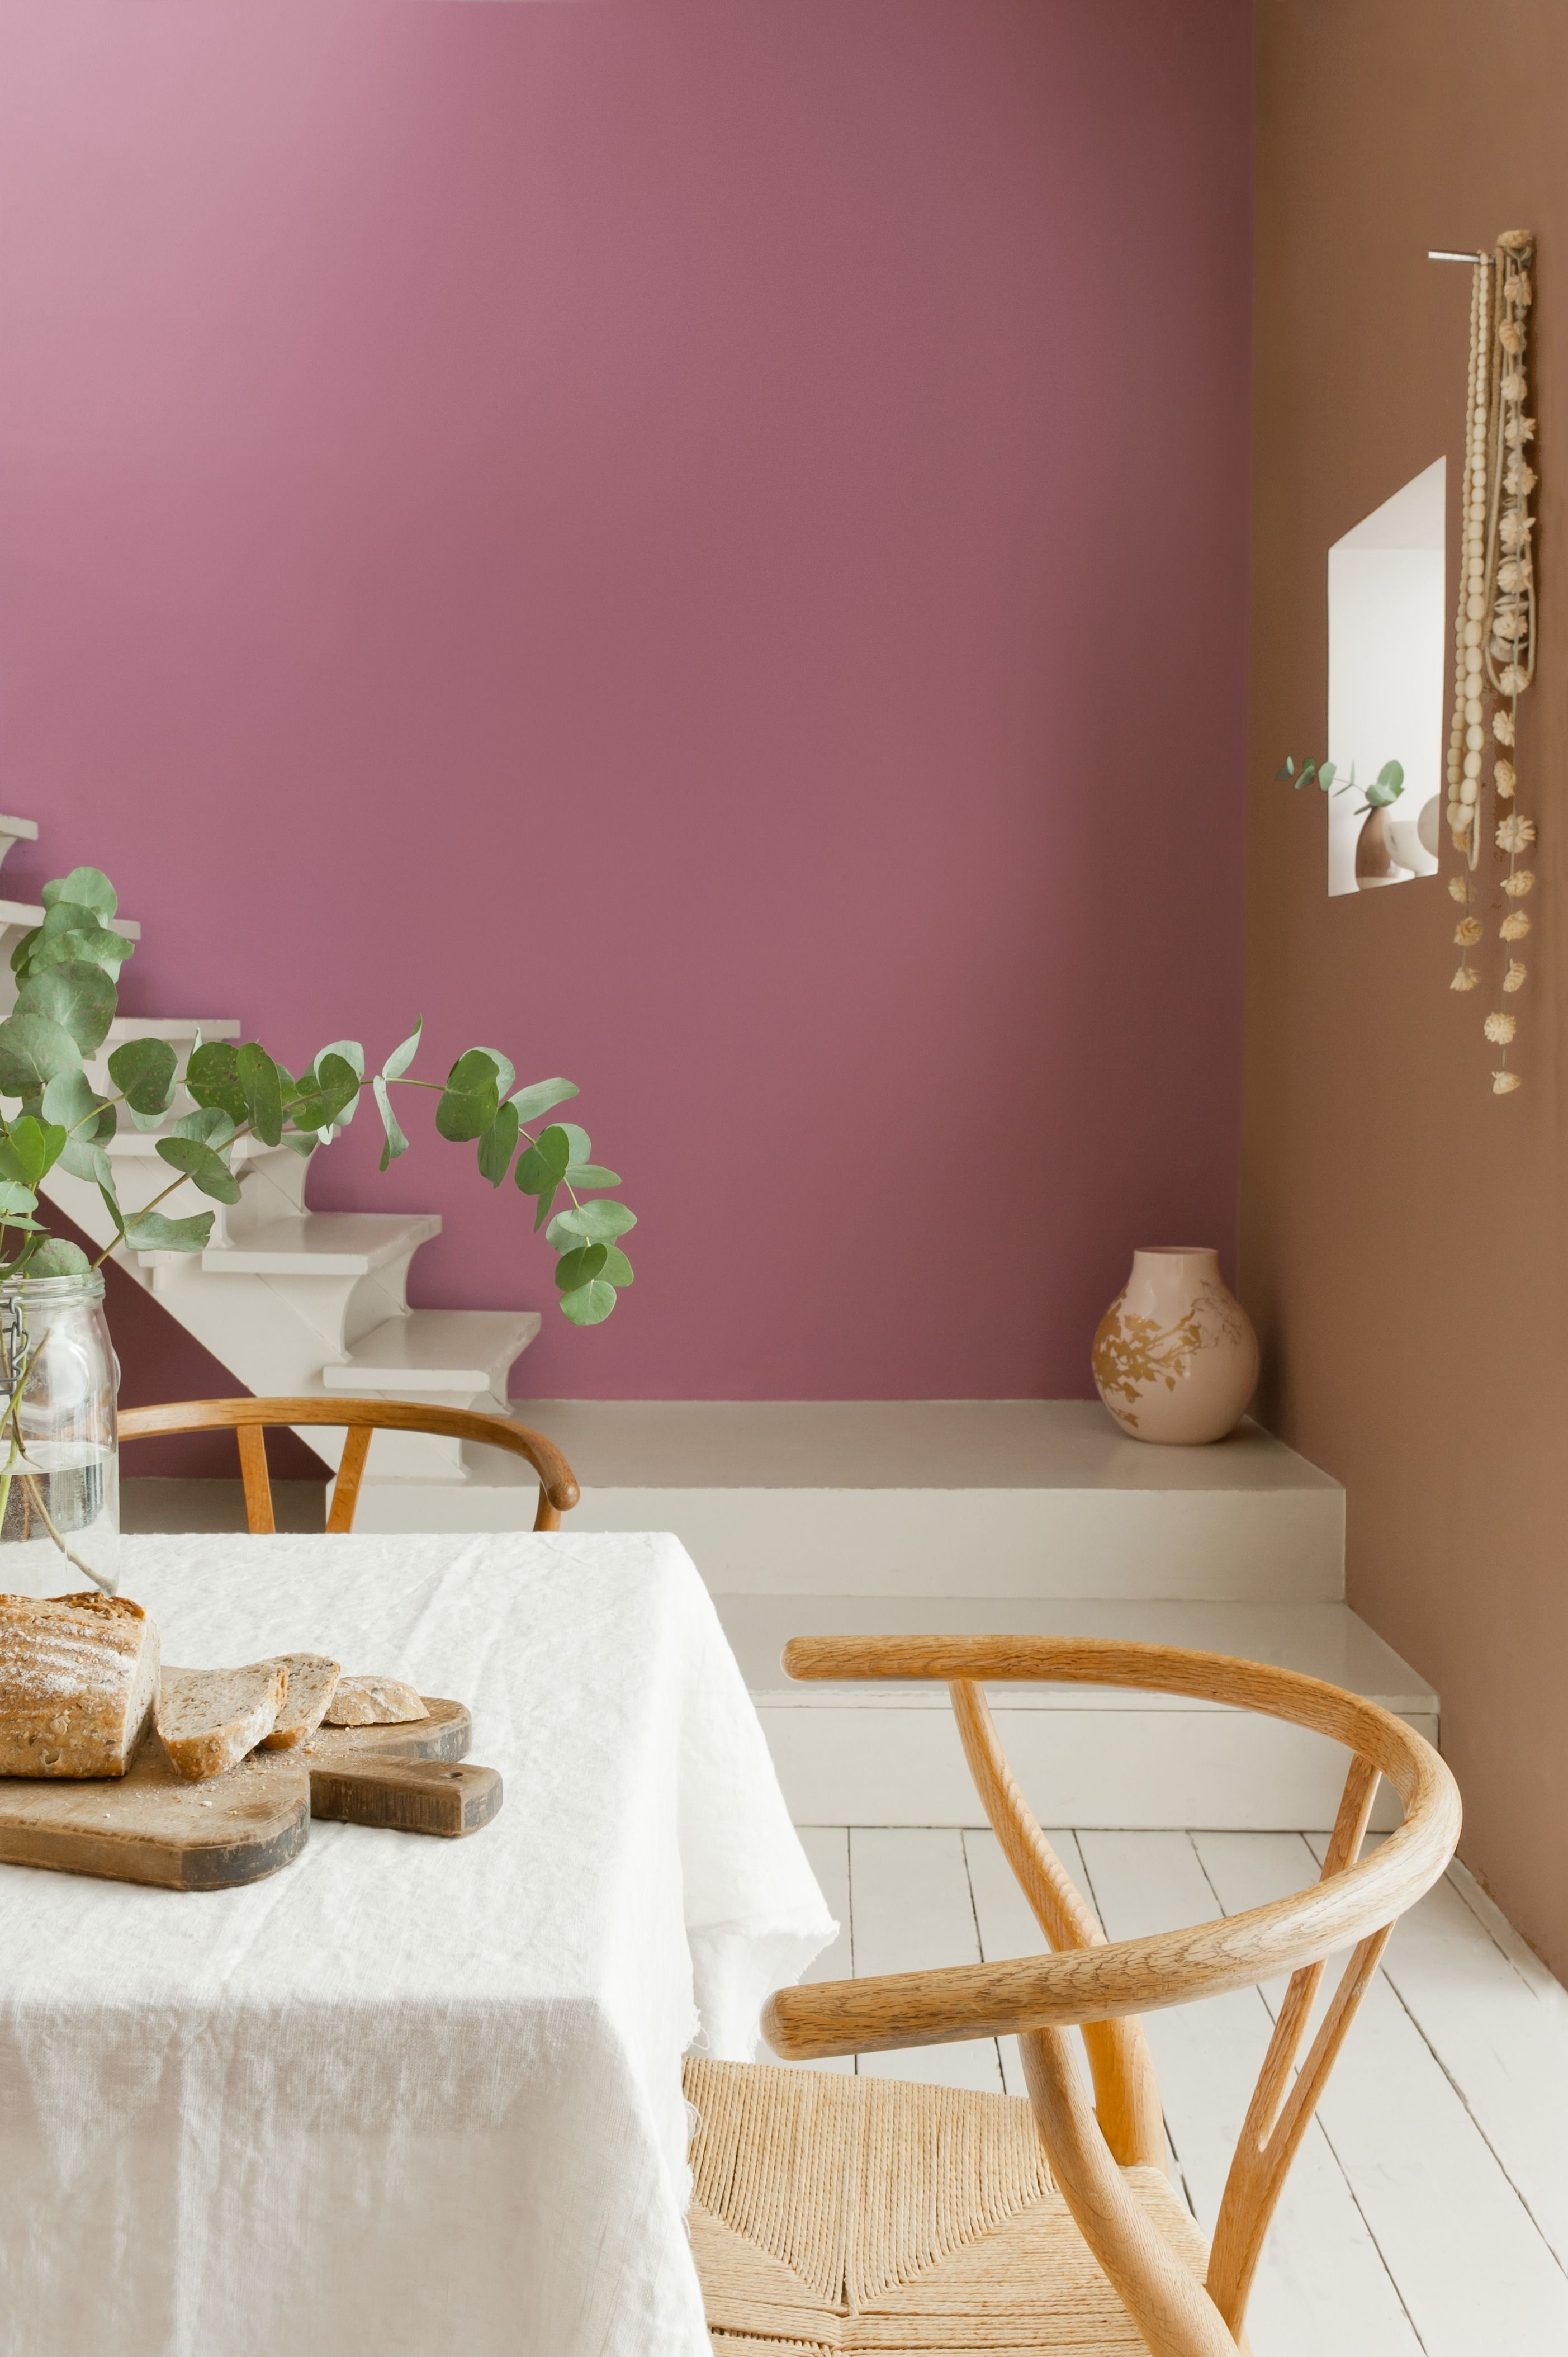 Here We See Soft Blush Used With Sugary Parisian Cream Both From The Dulux Easycare Range Colour Inspiration Dini Home Decor Colorful Interiors Taupe Walls